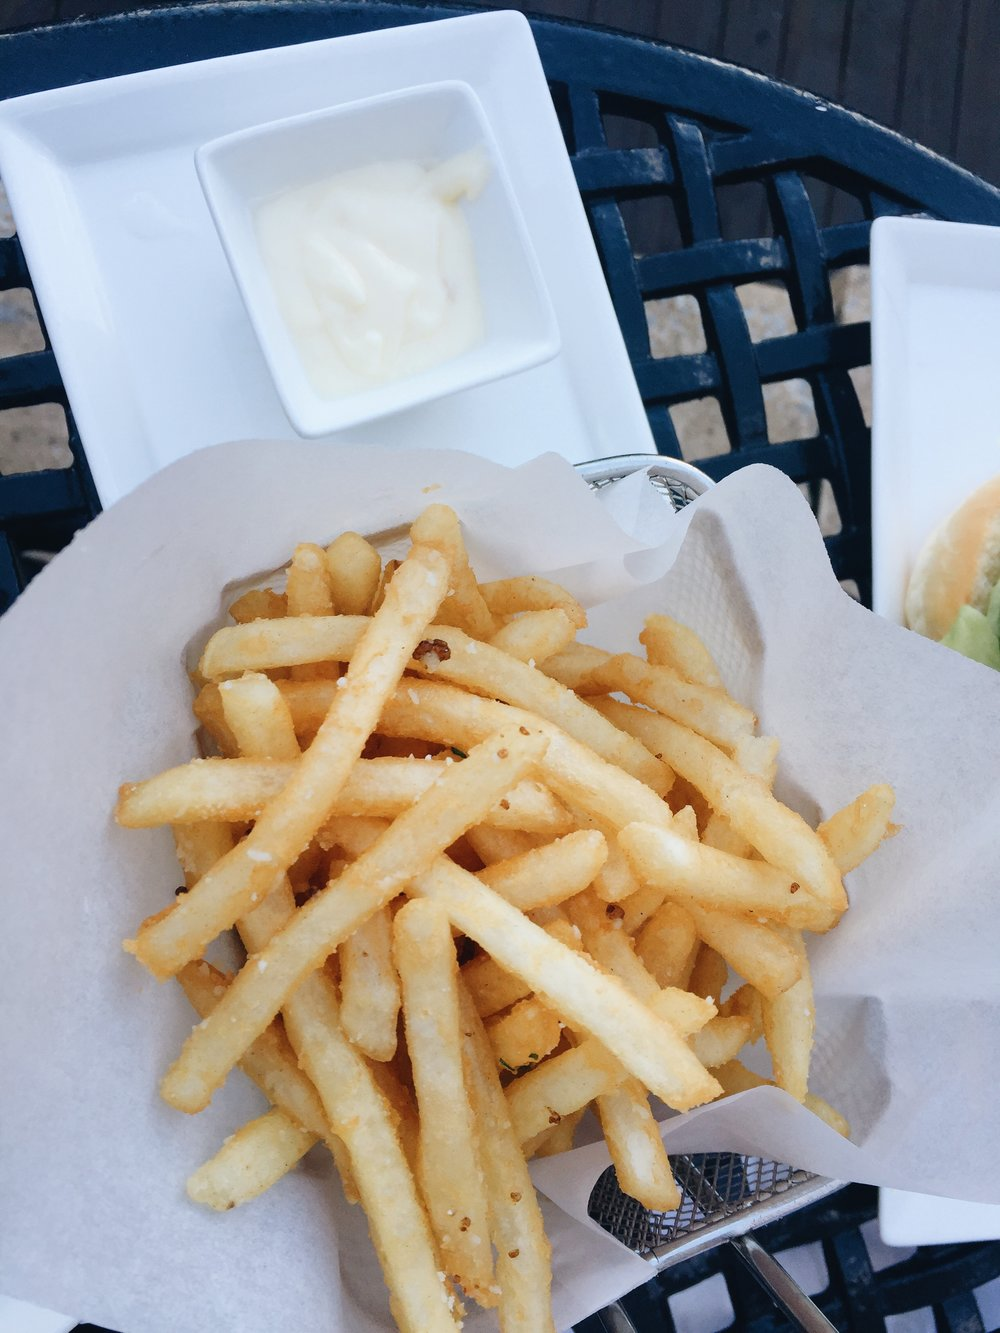 To die for Truffle Fries